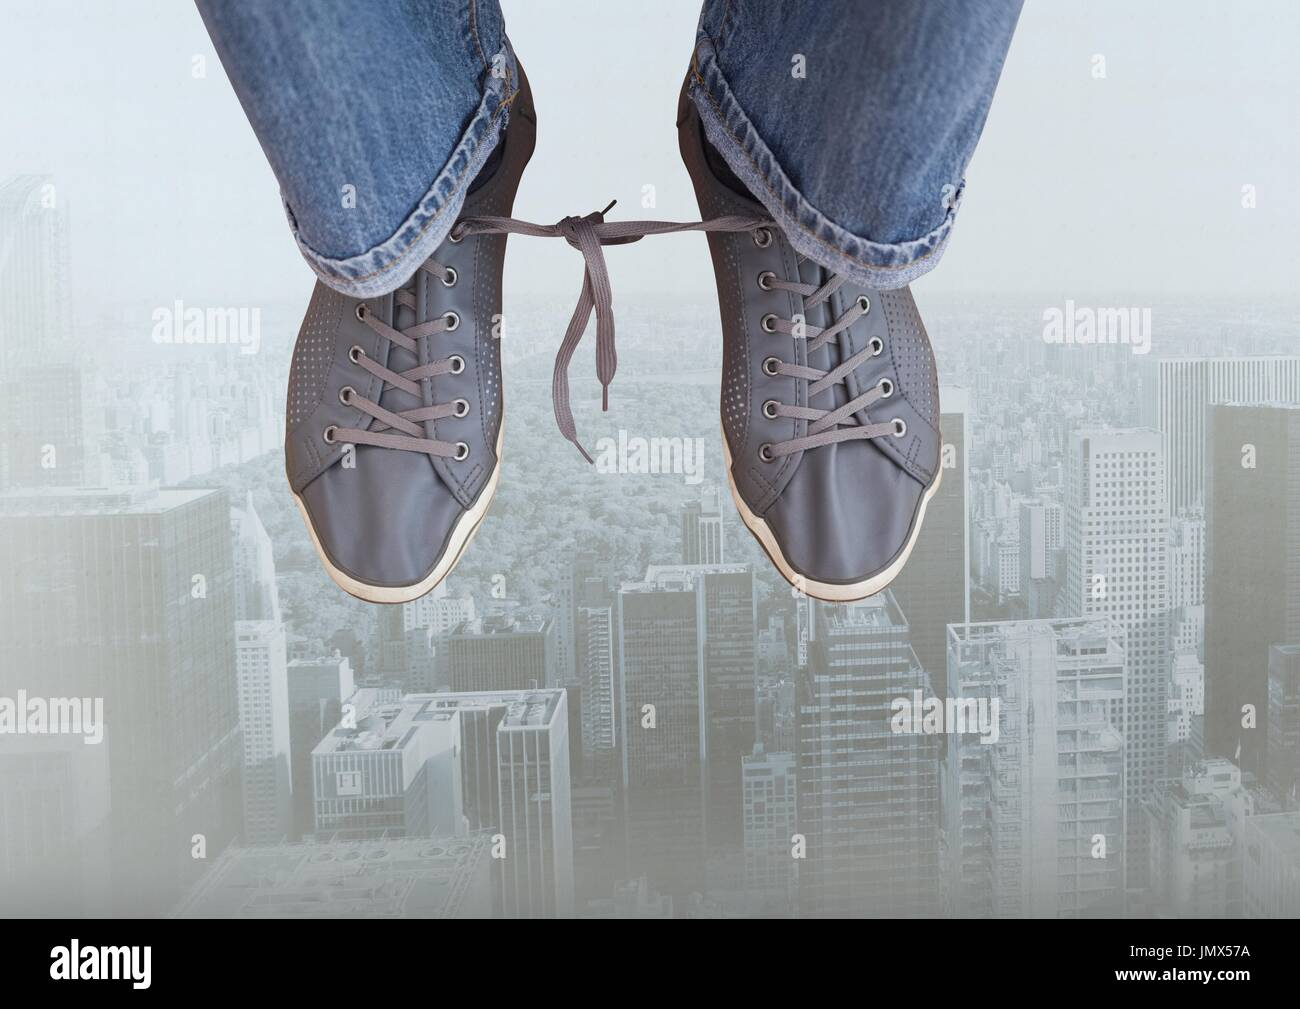 Digital composite of Shoelaces tied together over city - Stock Image